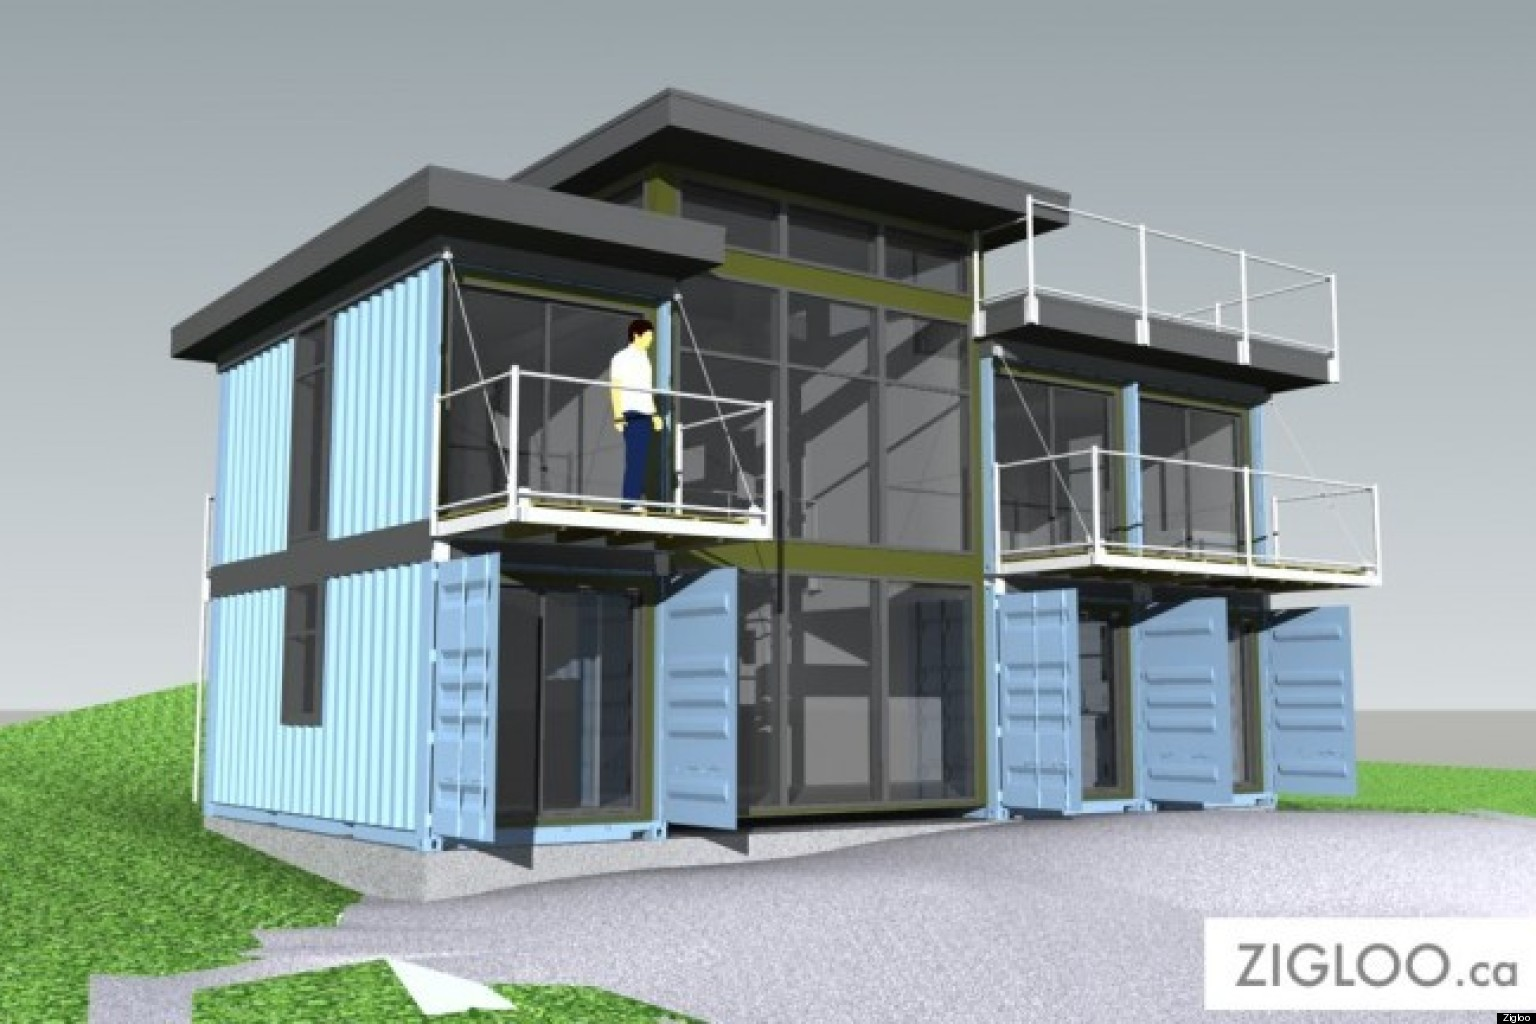 Modular homes bc designers turn shipping containers into houses - Container homes alberta ...